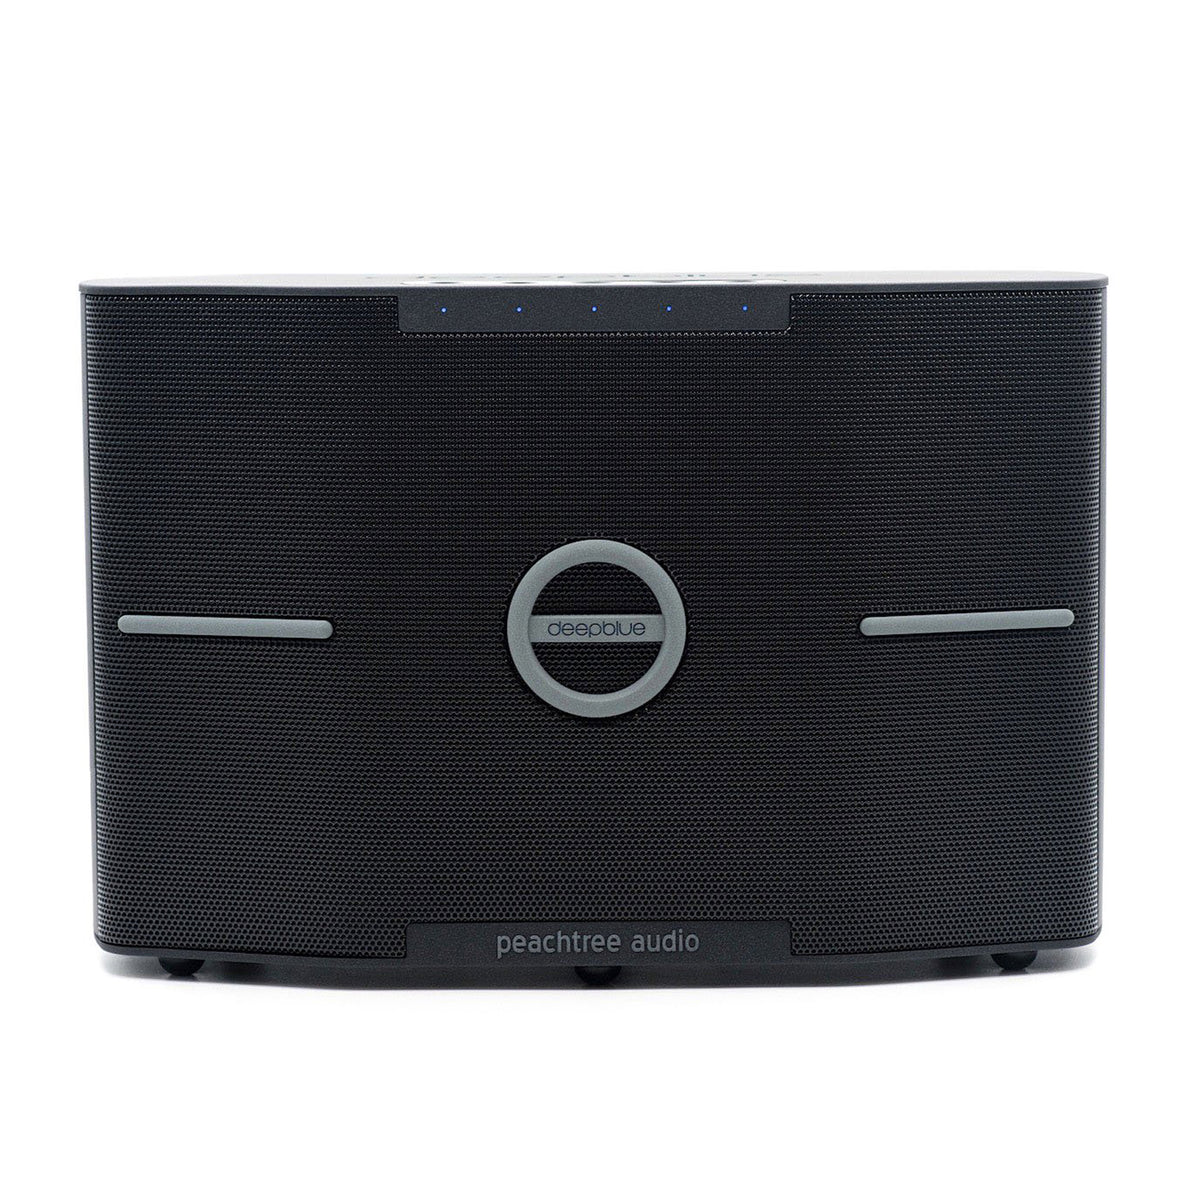 Peachtree Audio: deepblueSKY Wireless Multi-Room Speaker